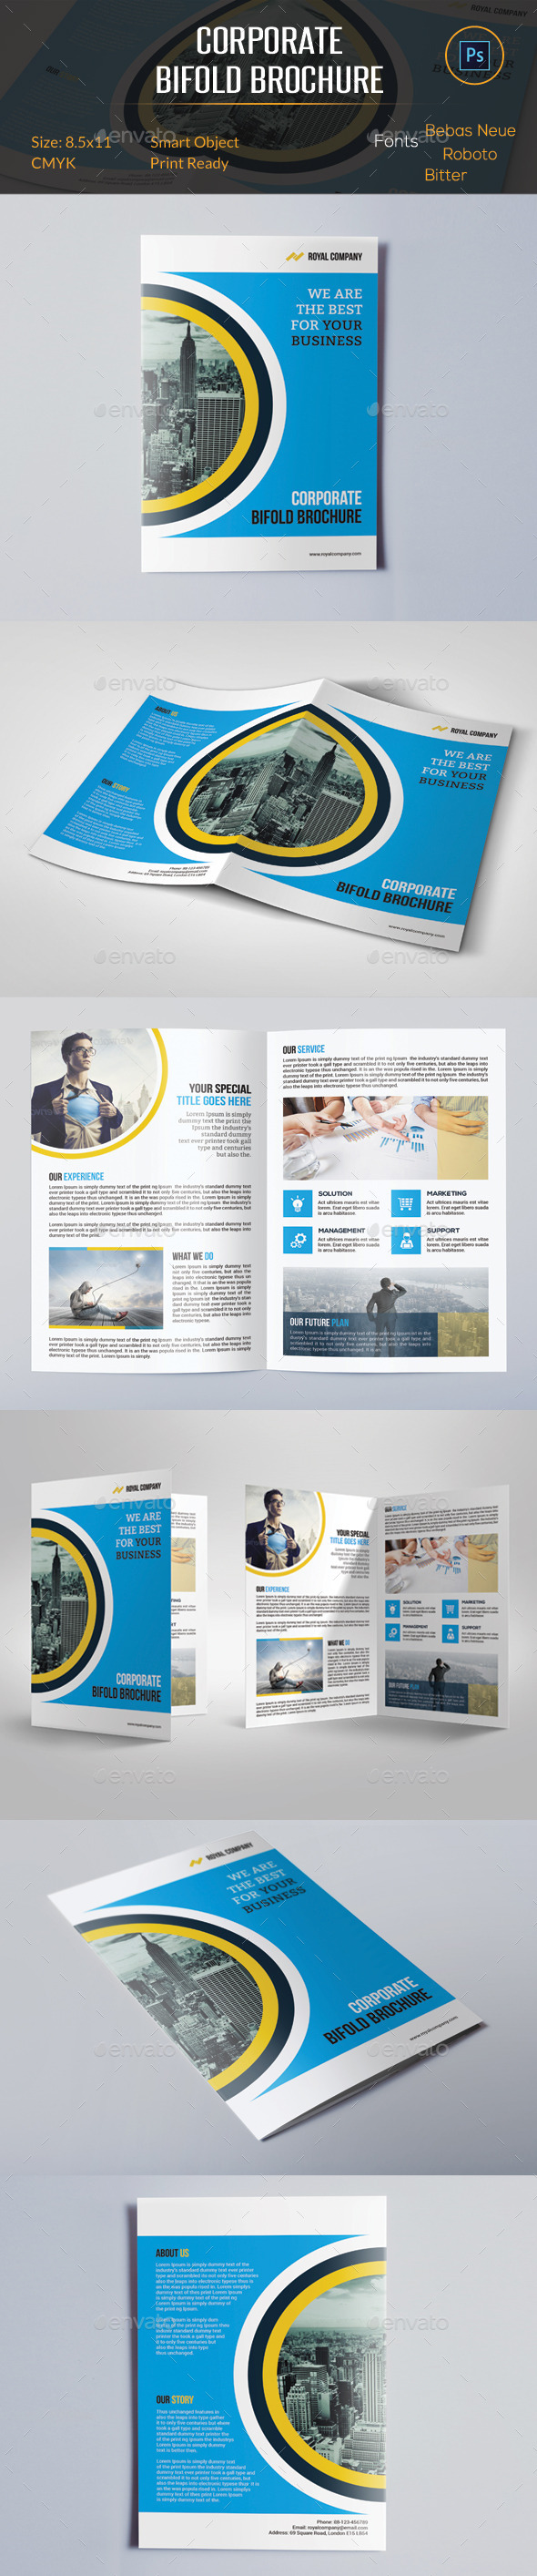 GraphicRiver Corporate Bifold Brochure 10978459